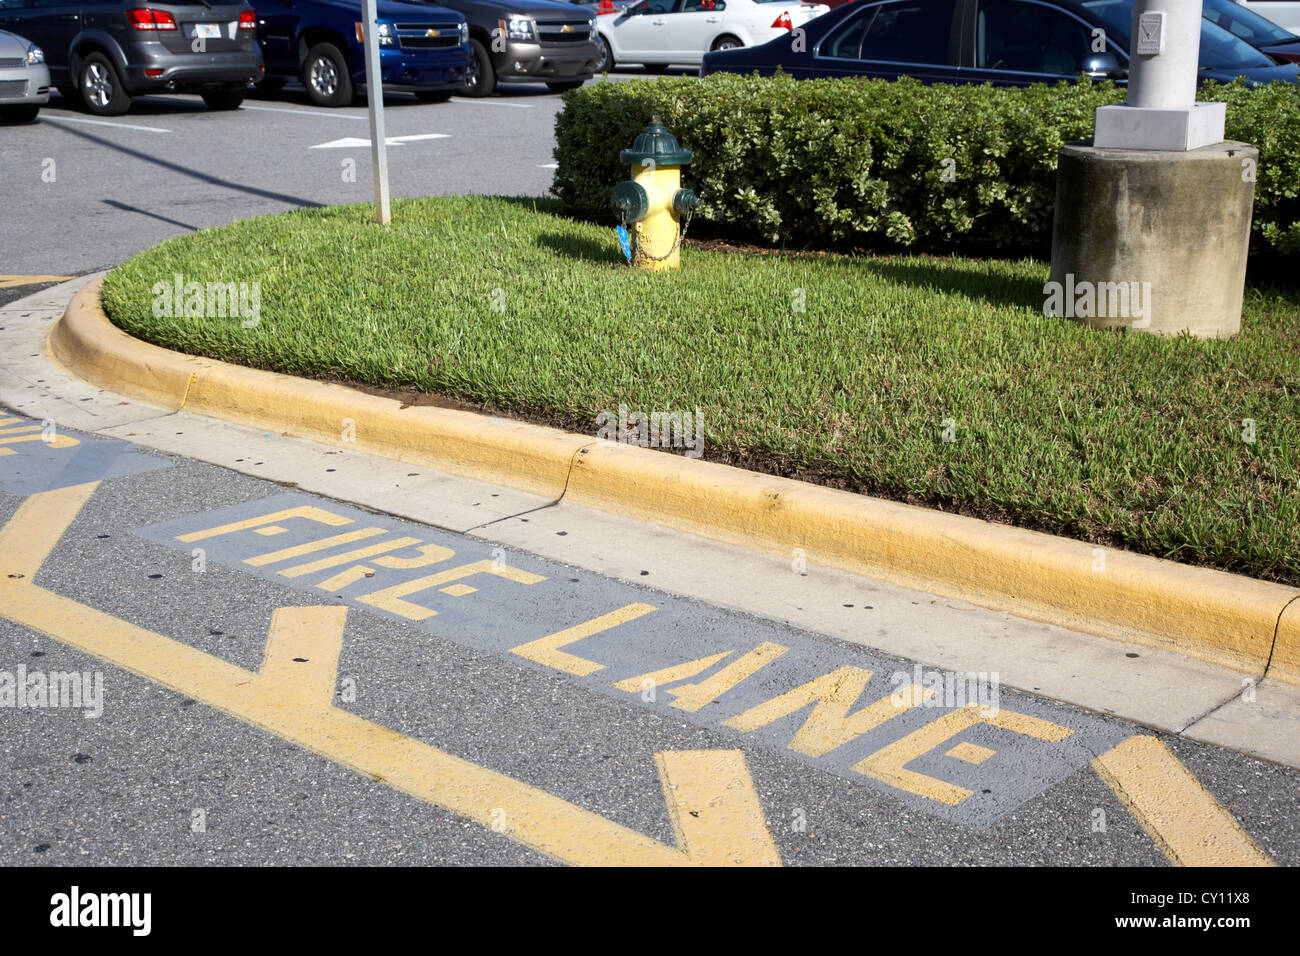 fire lane marking beside fire hydrant in car park orlando florida usa - Stock Image